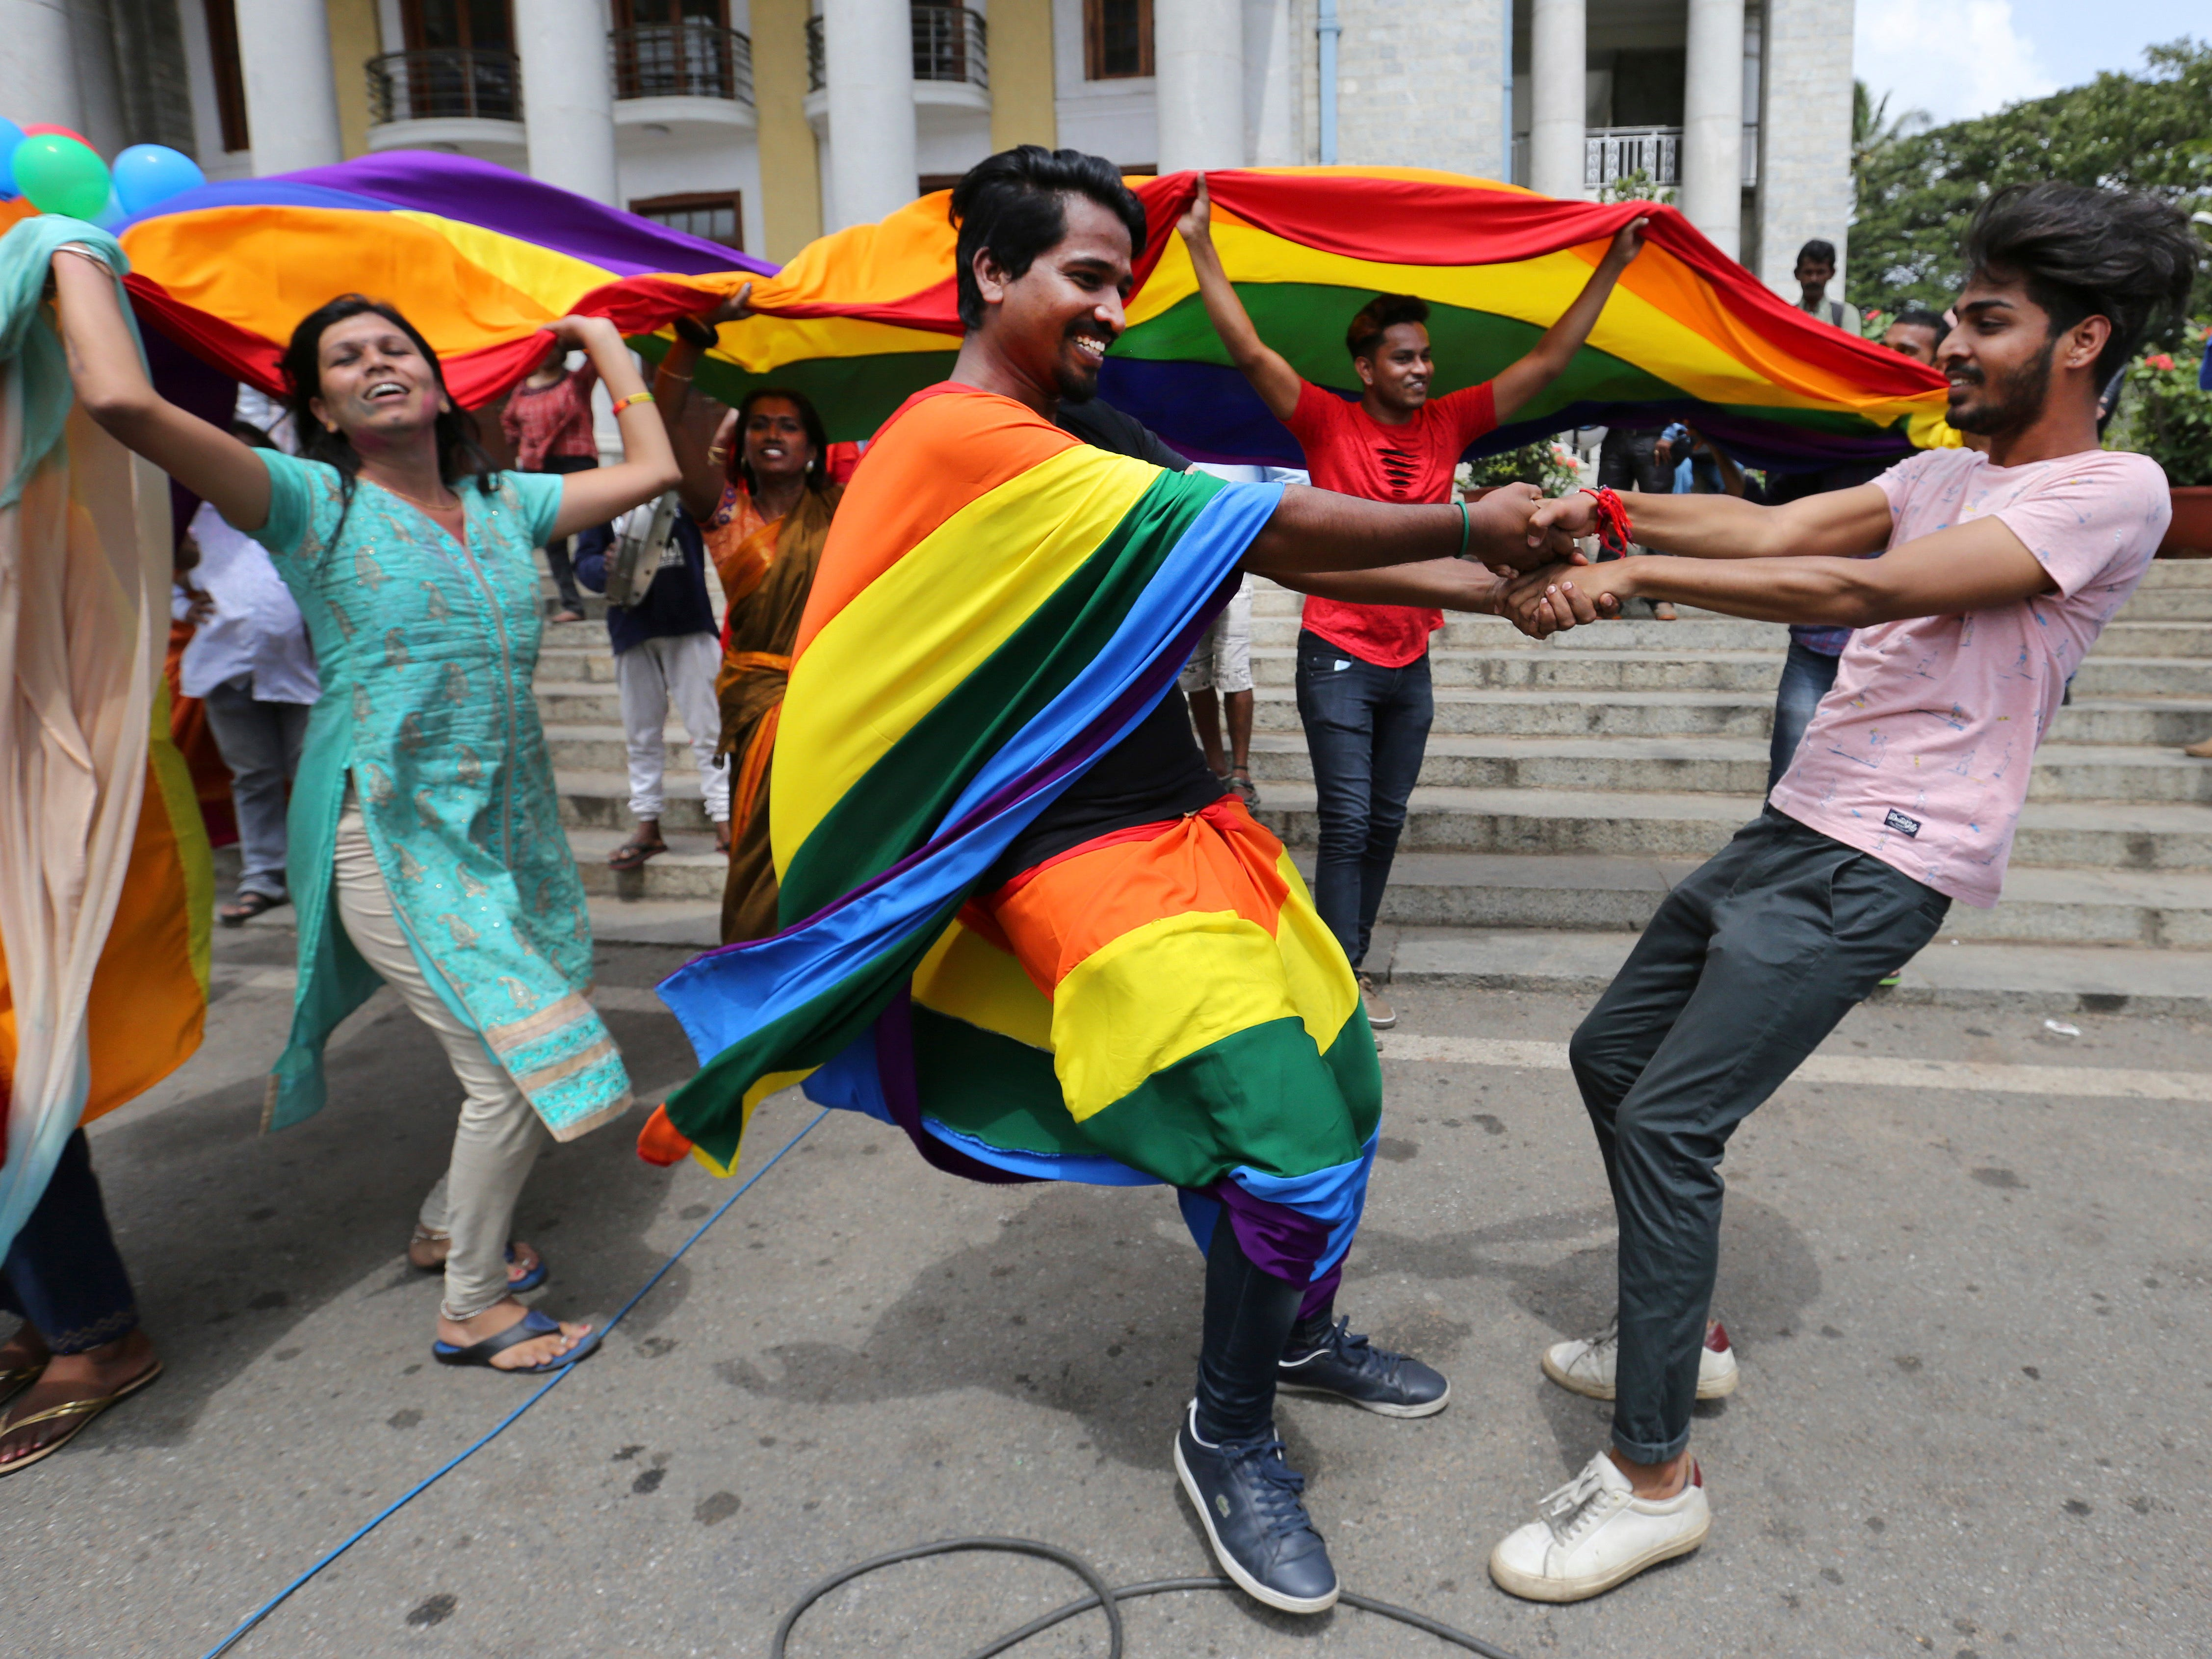 Supporters and members of the LGBT community dance to celebrate after the country's top court struck down a colonial-era law that made homosexual acts punishable by up to 10 years in prison, in Bangalore, India, Sept. 6, 2018.